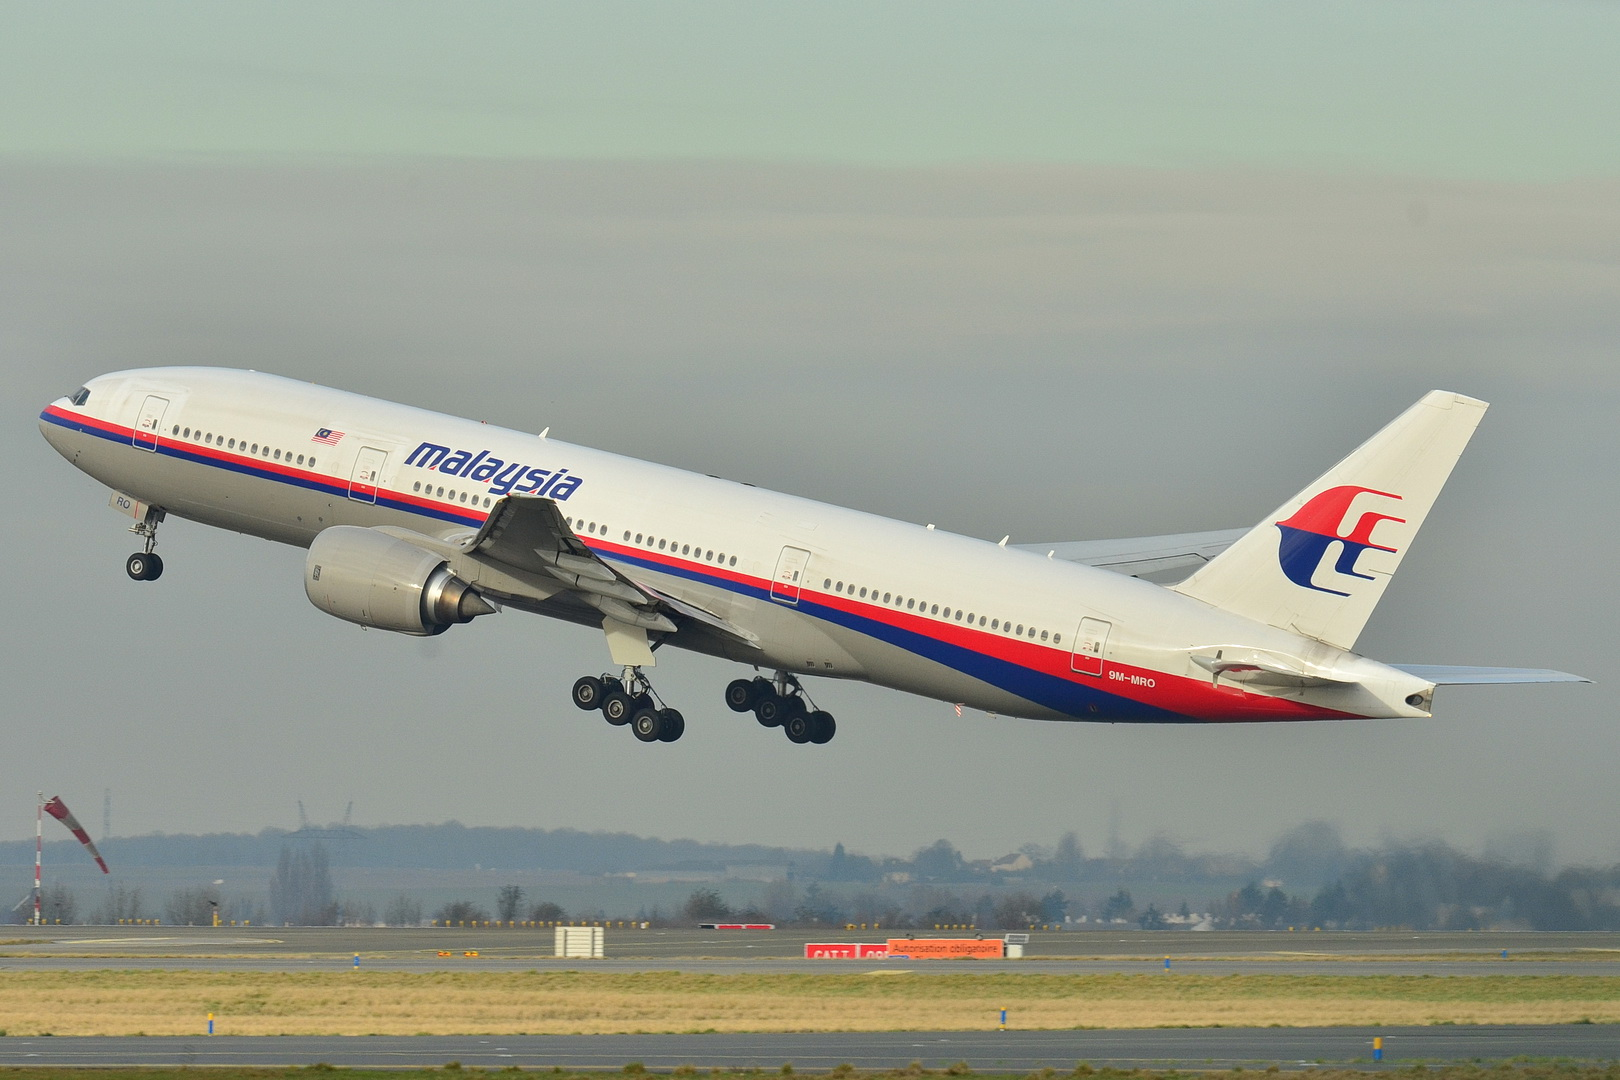 Malaysia Airlines Flight 370 - Wikipedia, the free encyclopedia